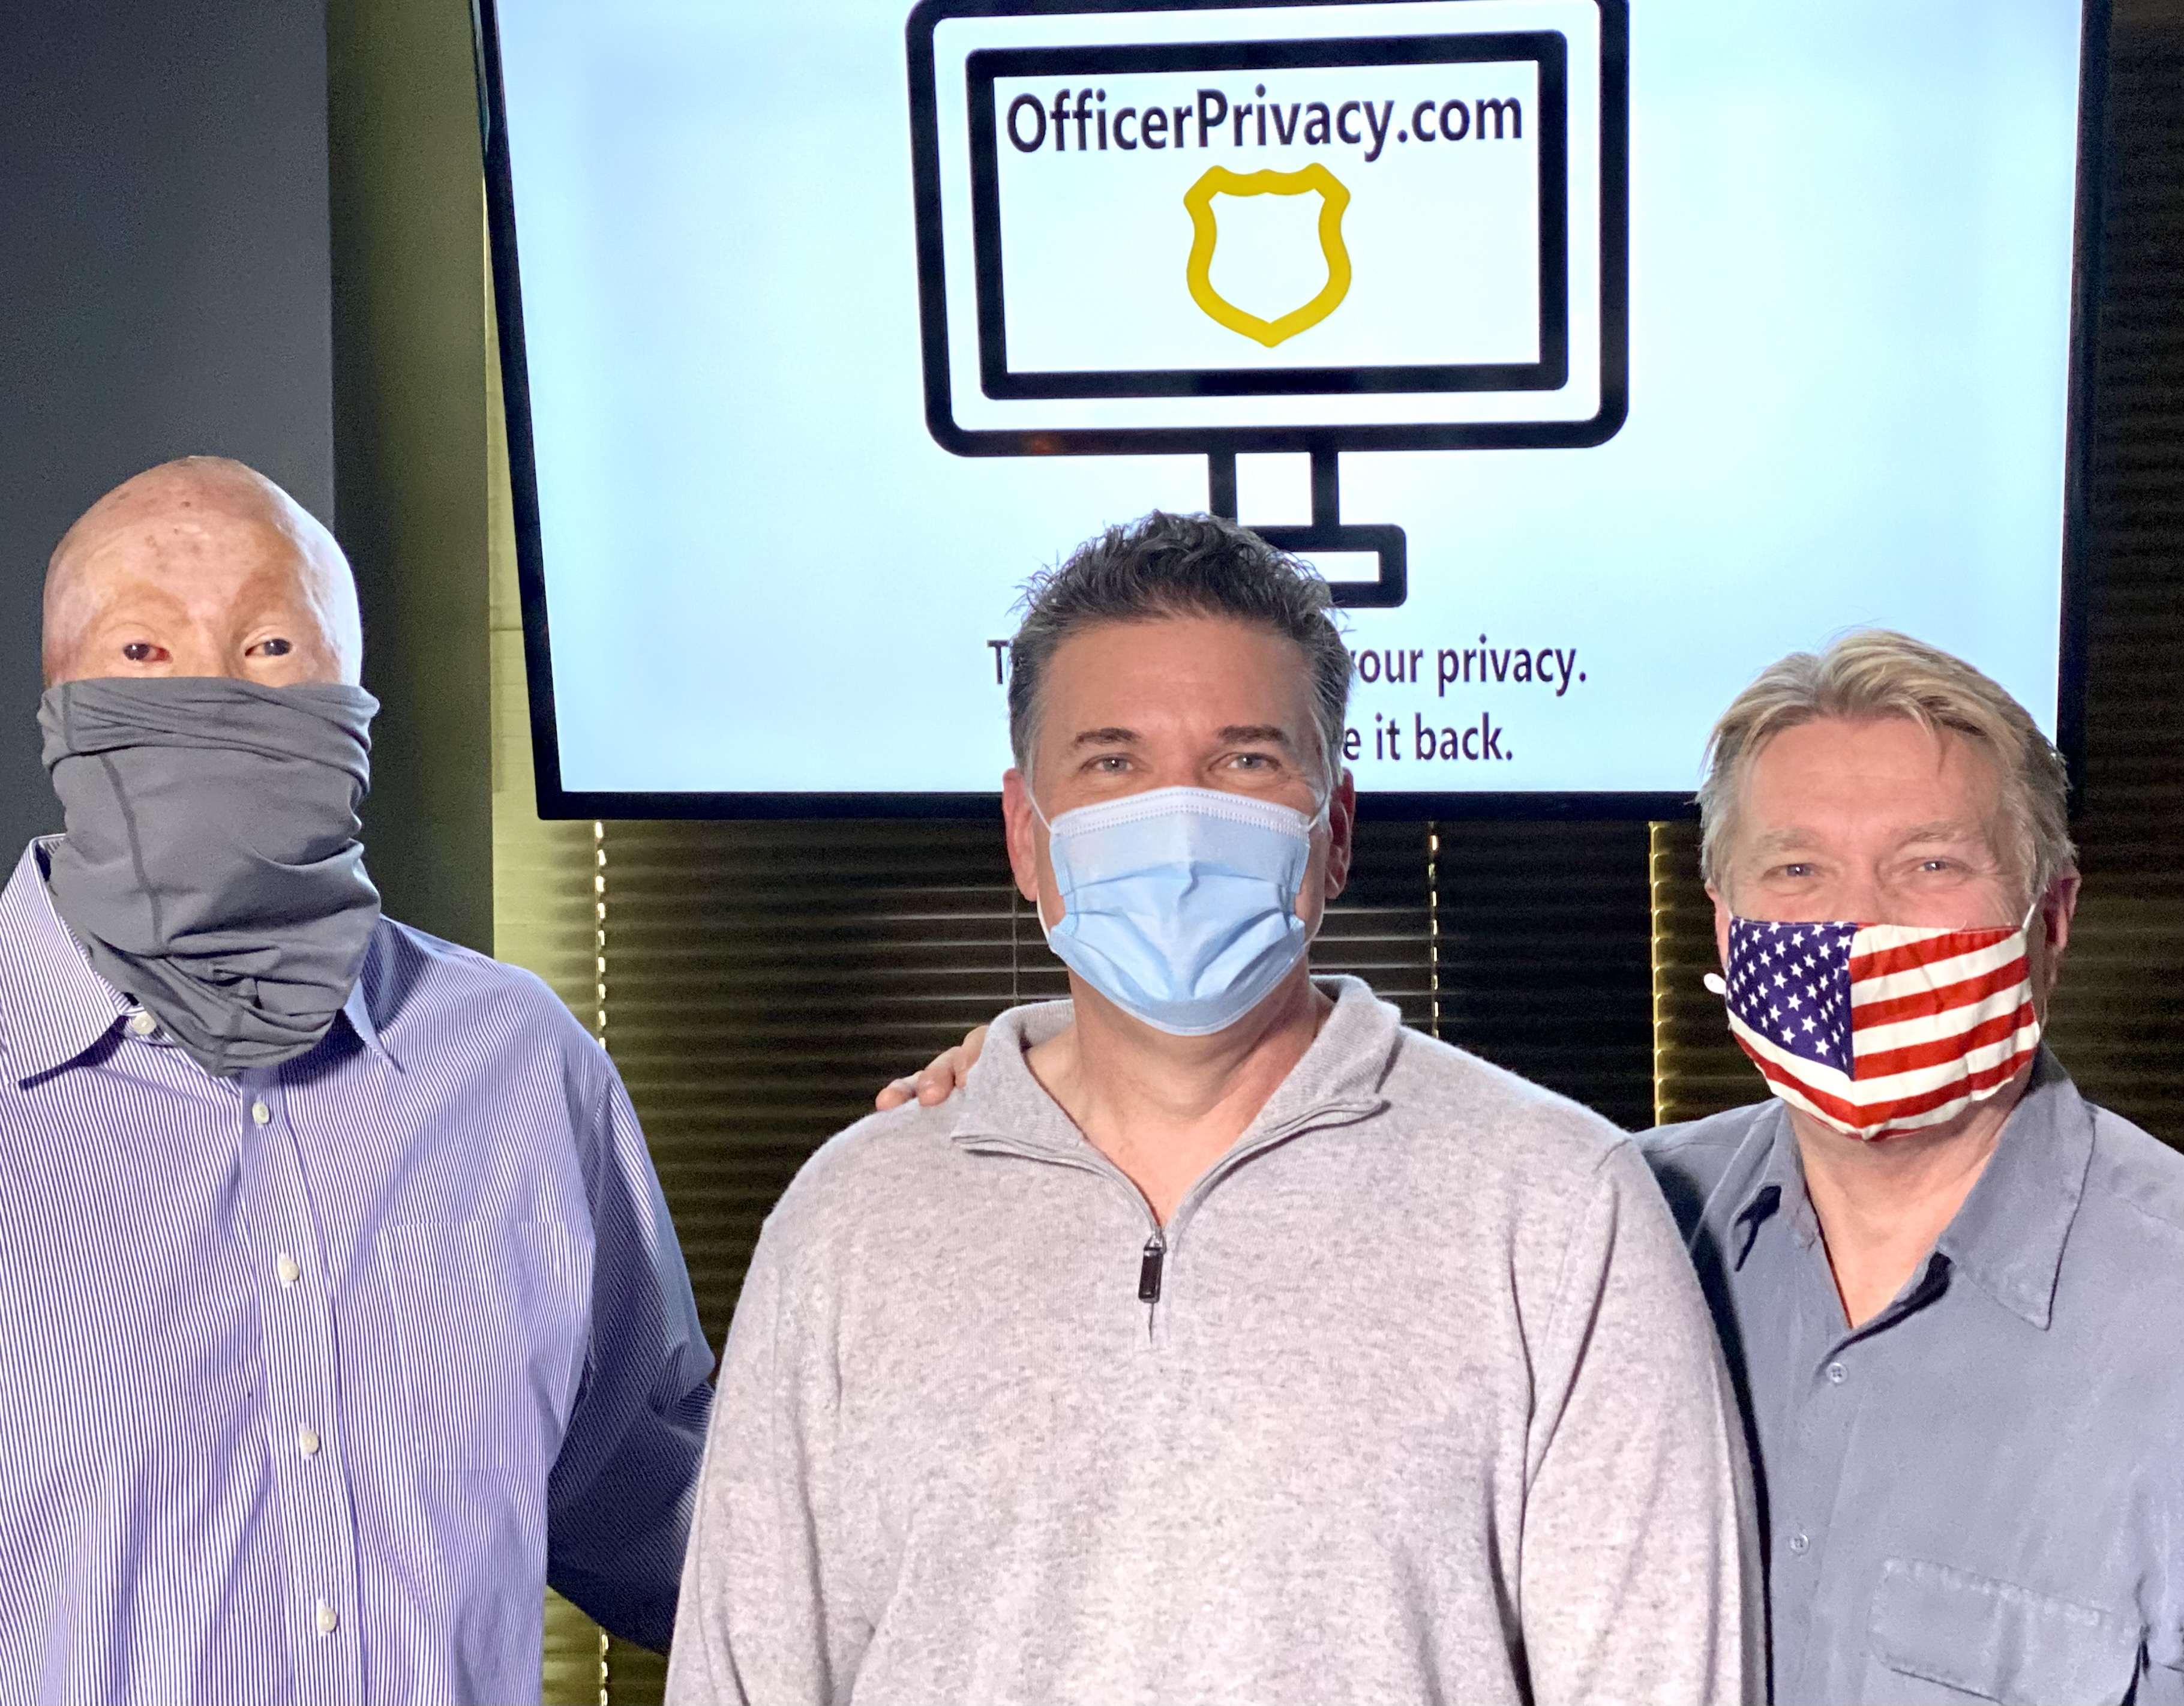 Retired Cop and Forensic Computer Expert Helps Officers Keep their private information off the internet with OfficerPrivacy.com